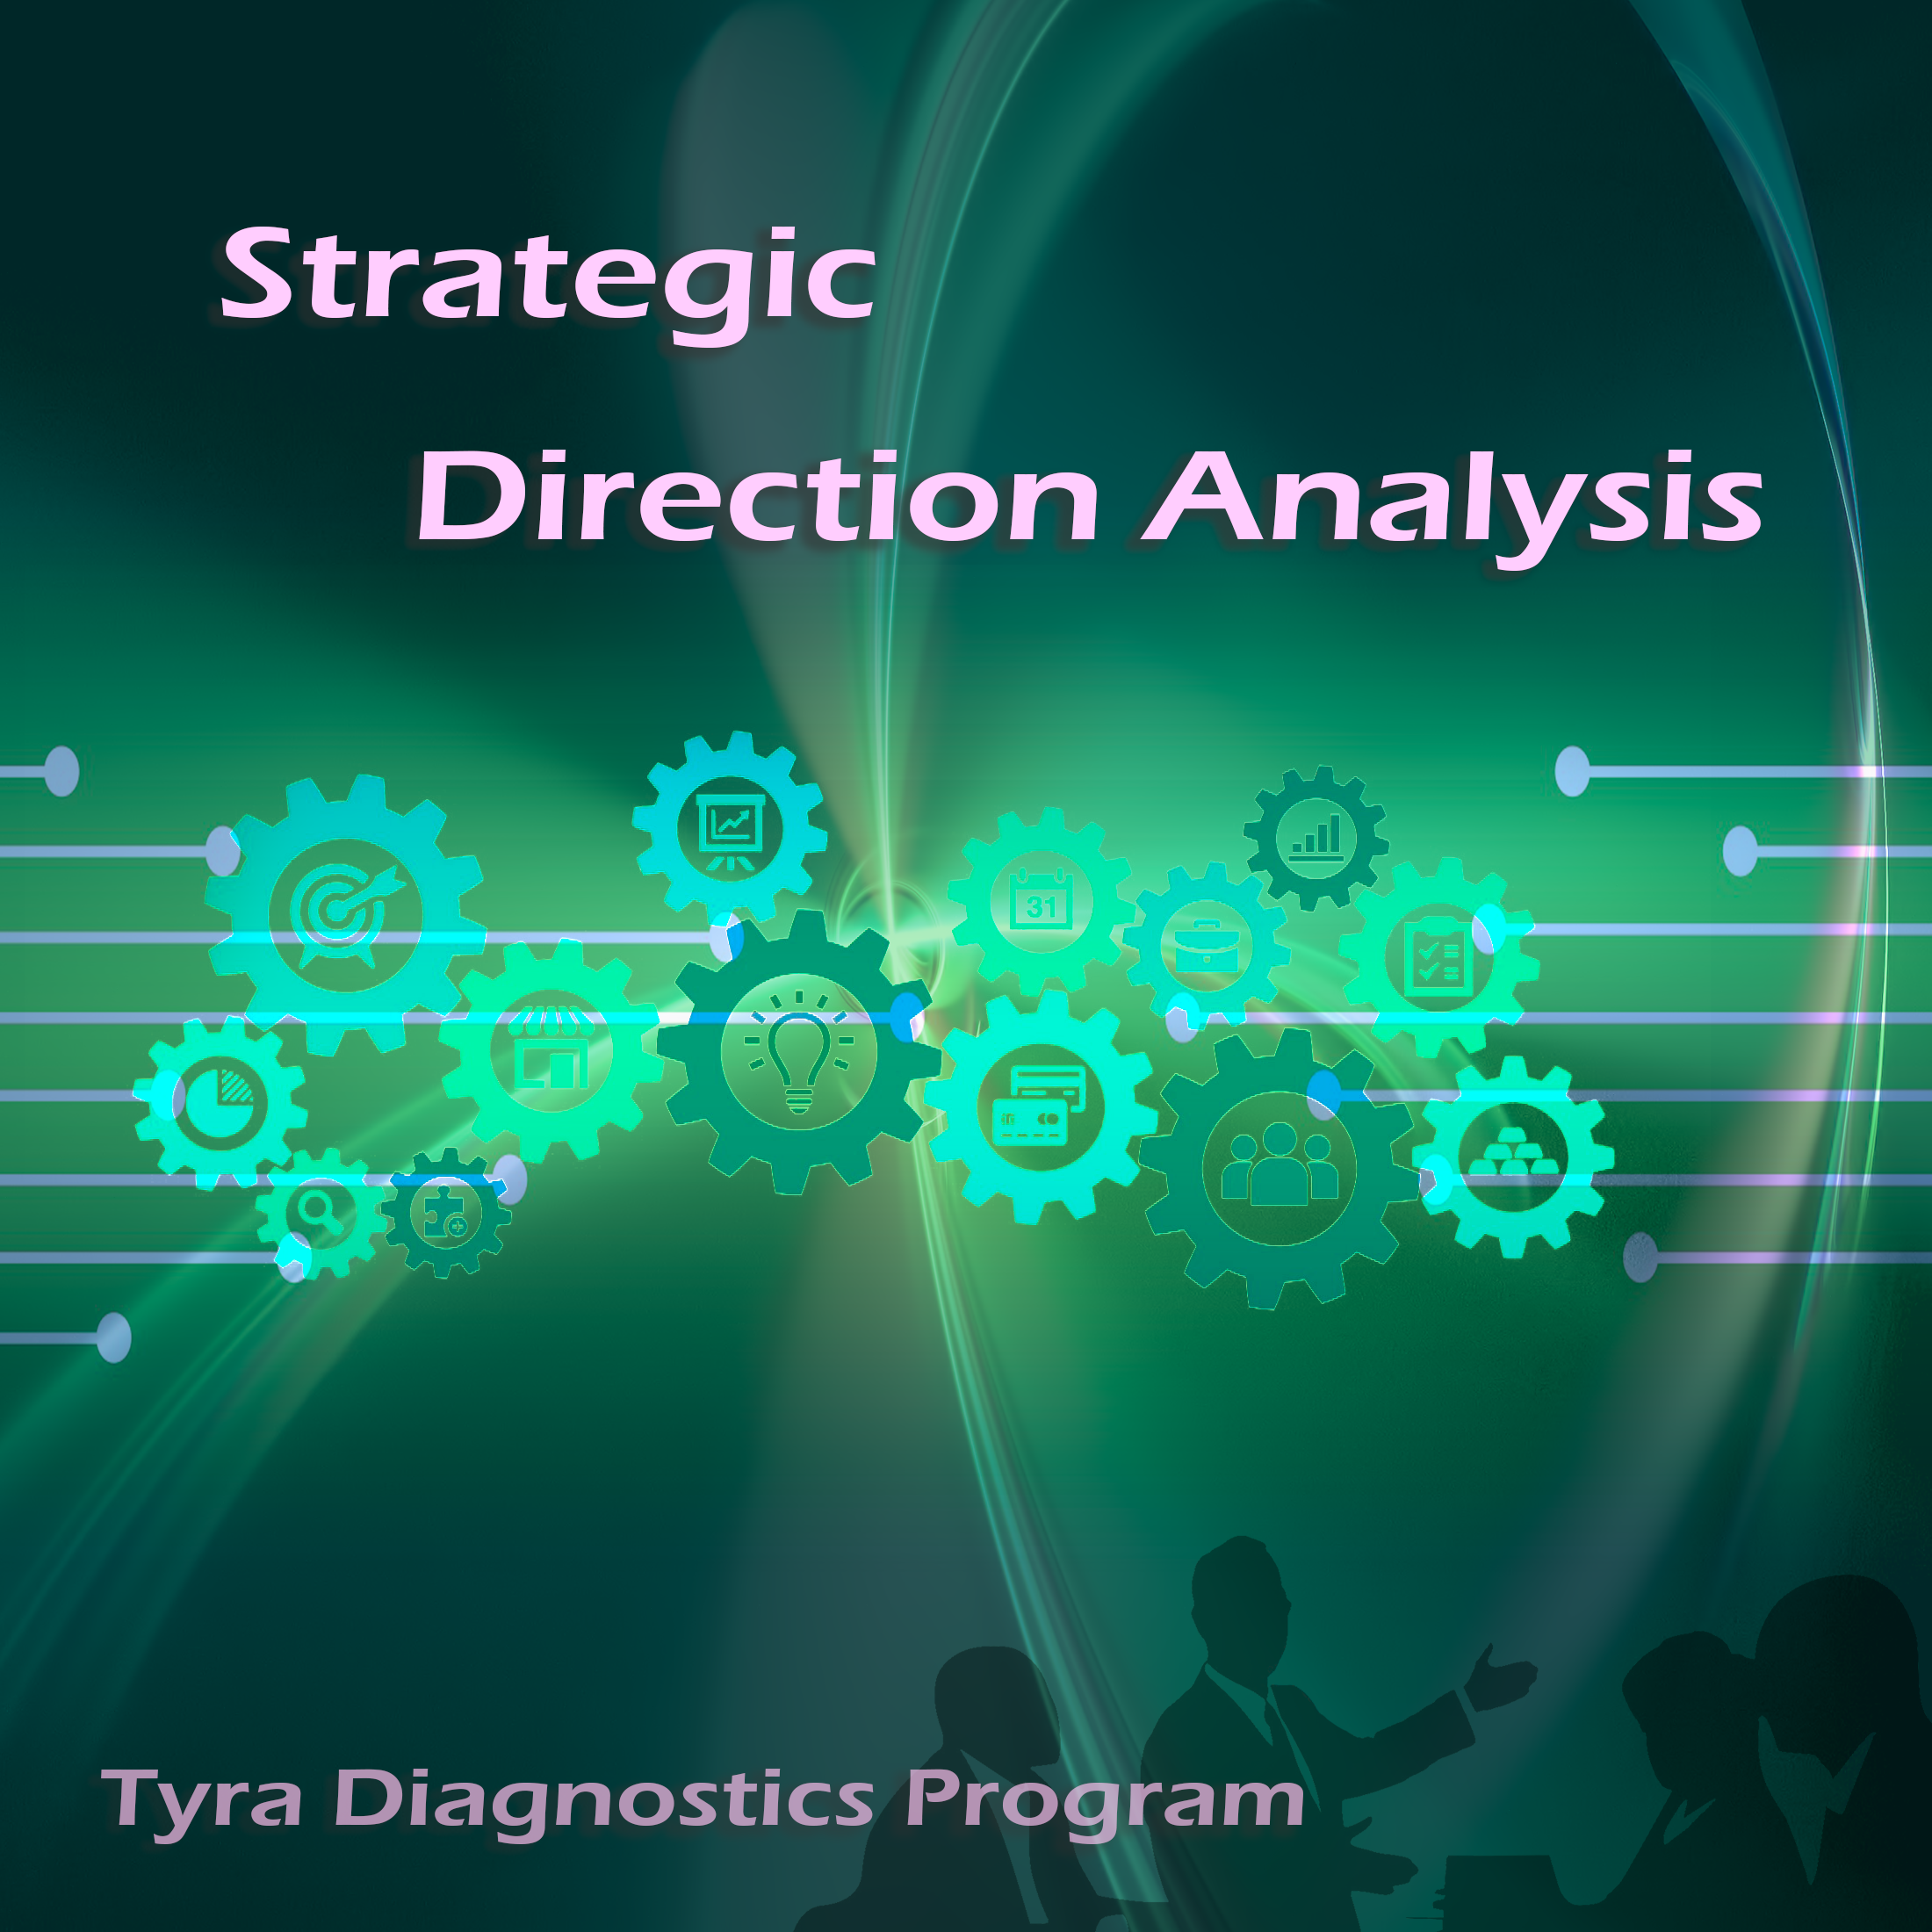 strategic-direction-analysis-cover-web.png